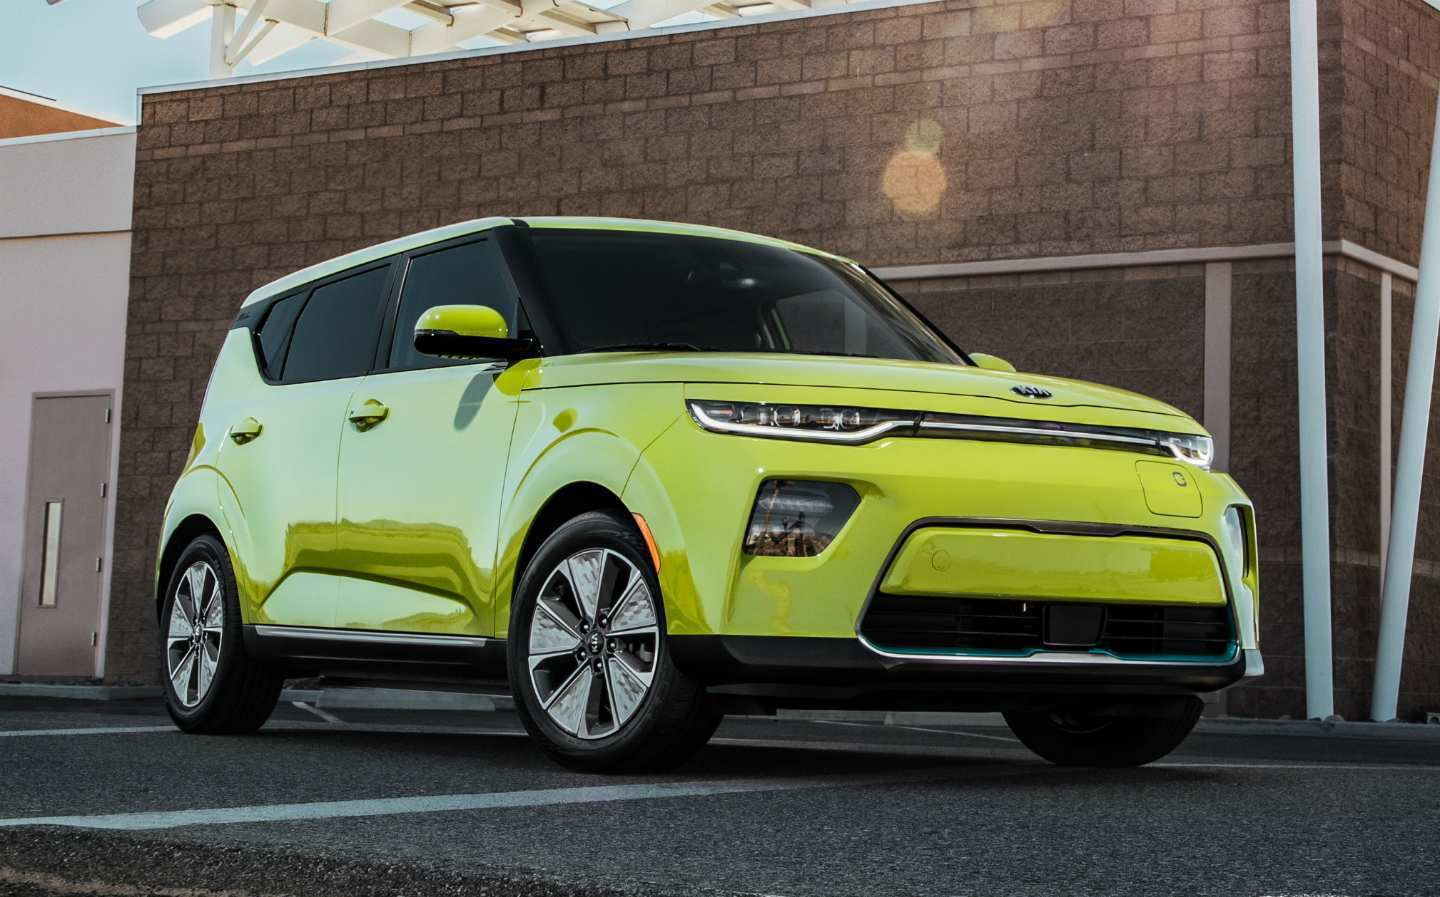 39 All New 2019 Kia Soul Redesign And Review